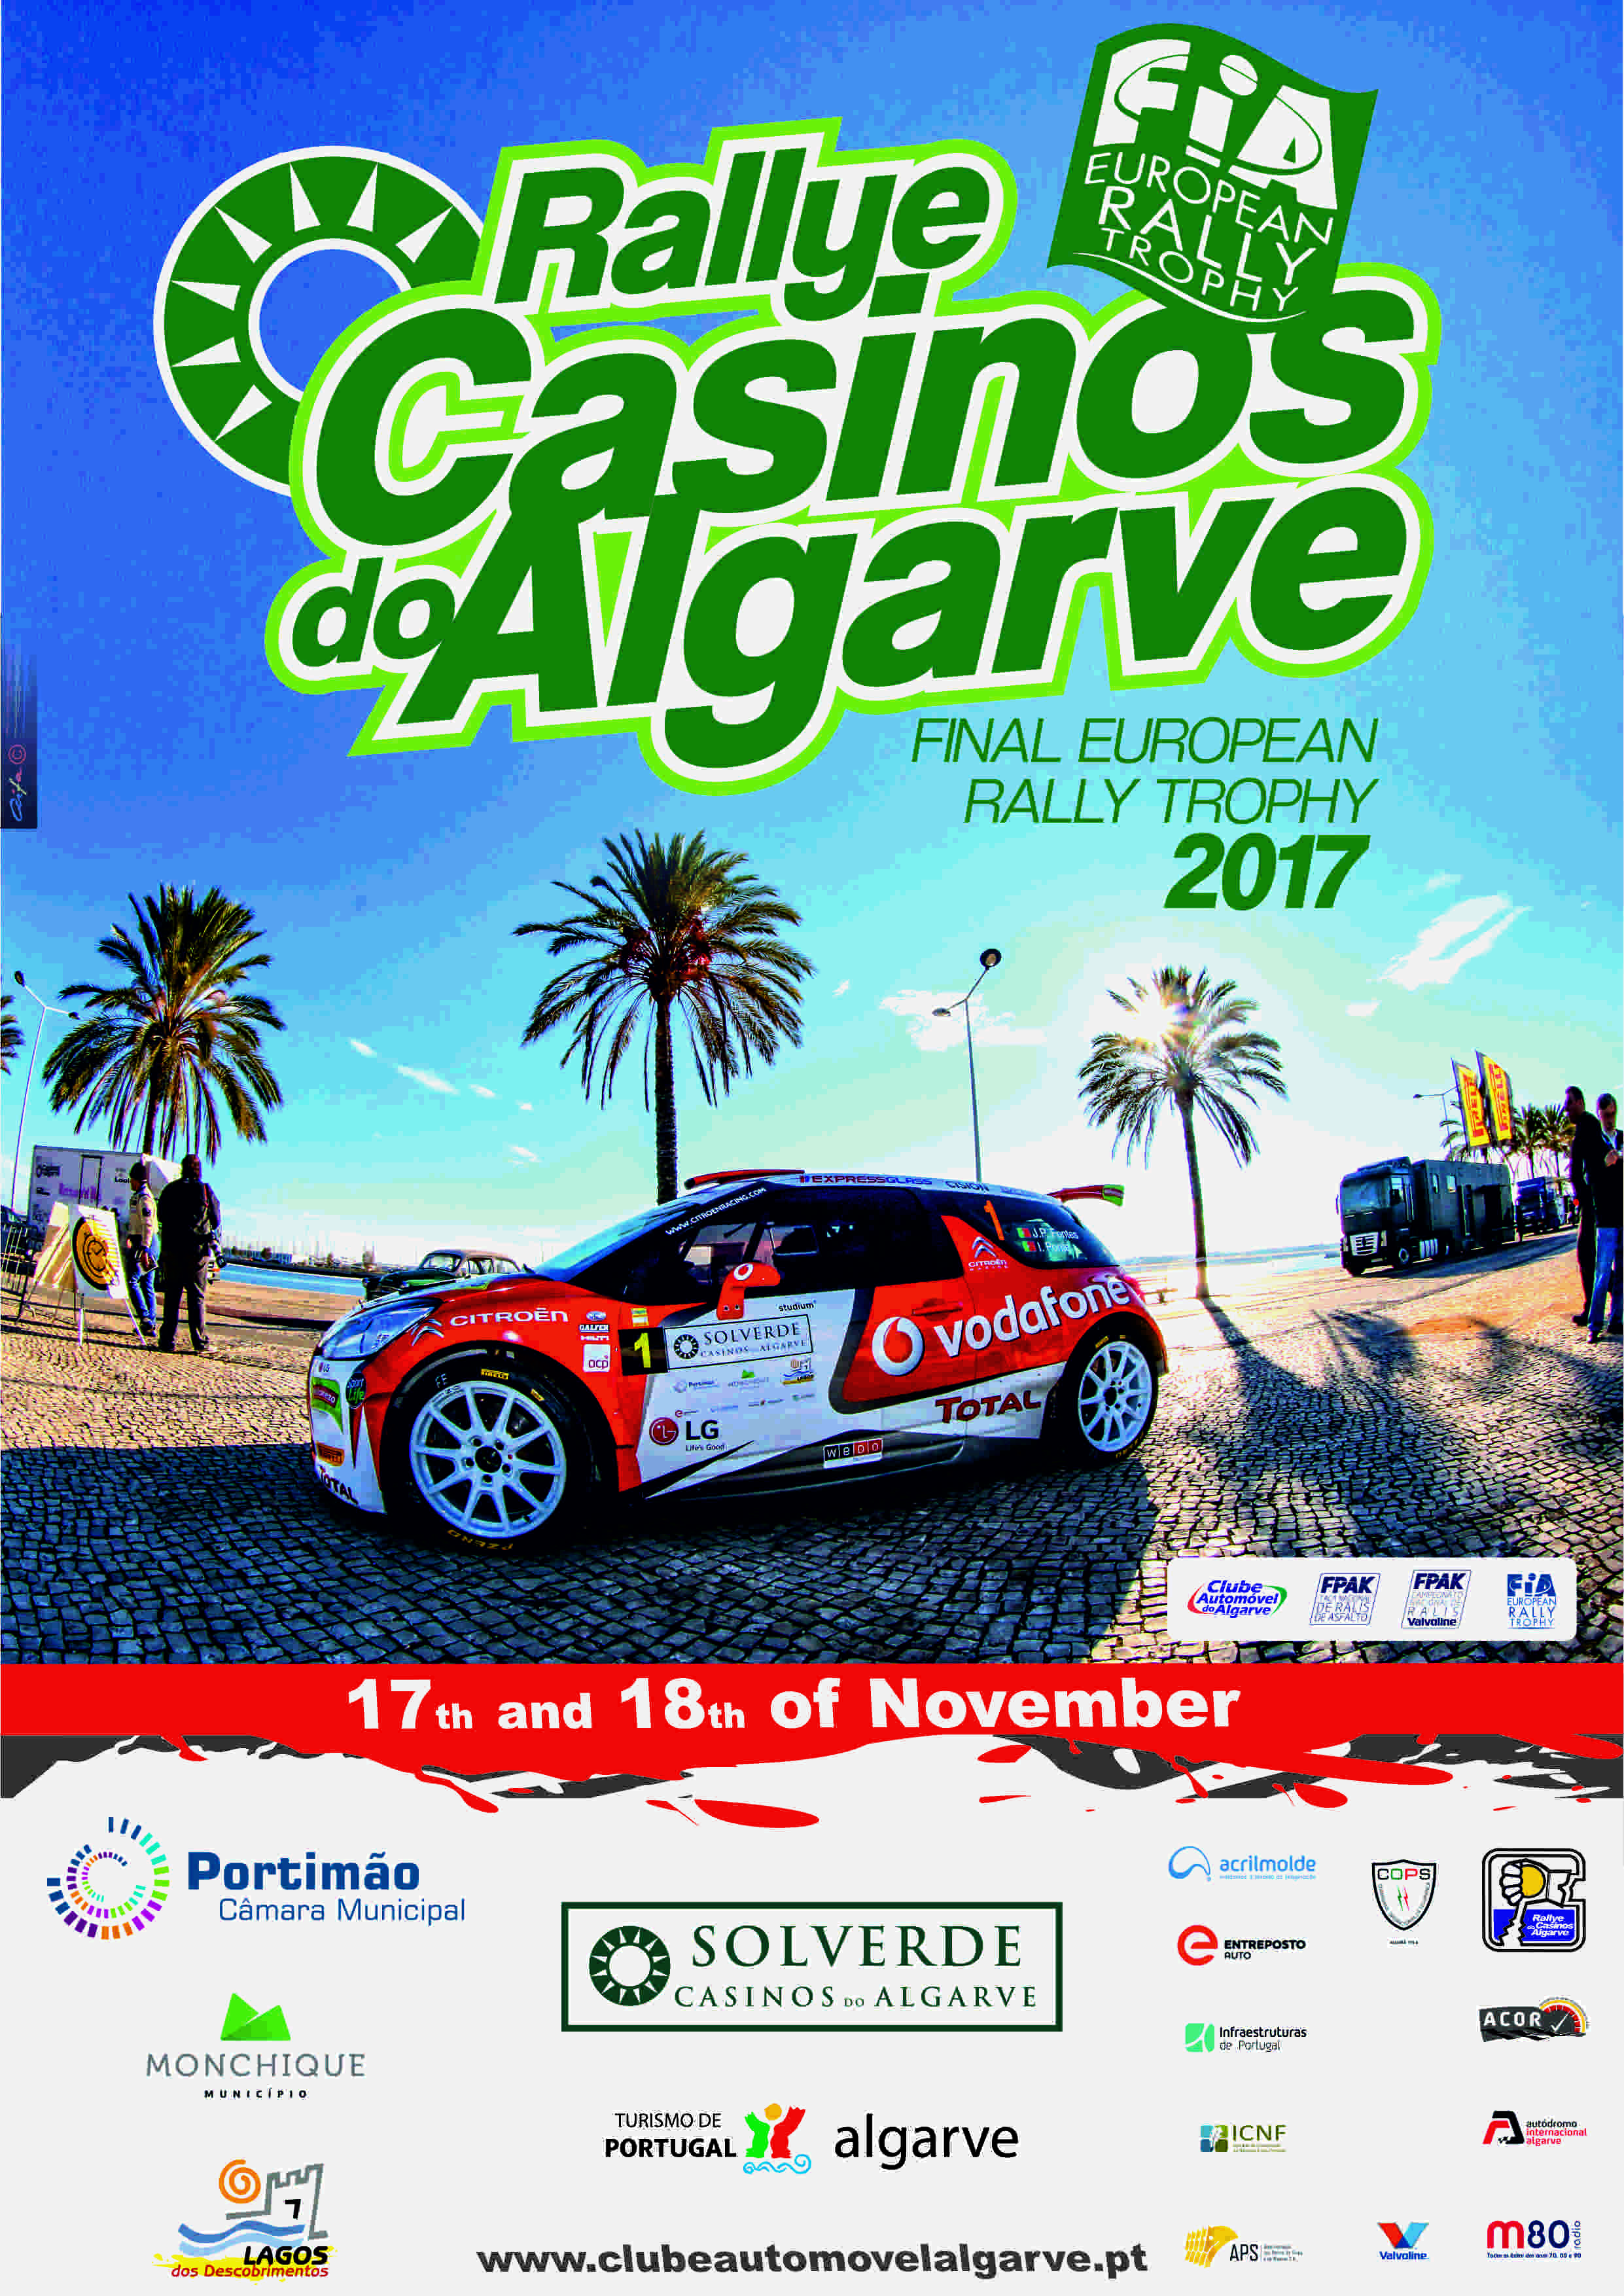 Rallye casinos do algarve 2014 poker flat